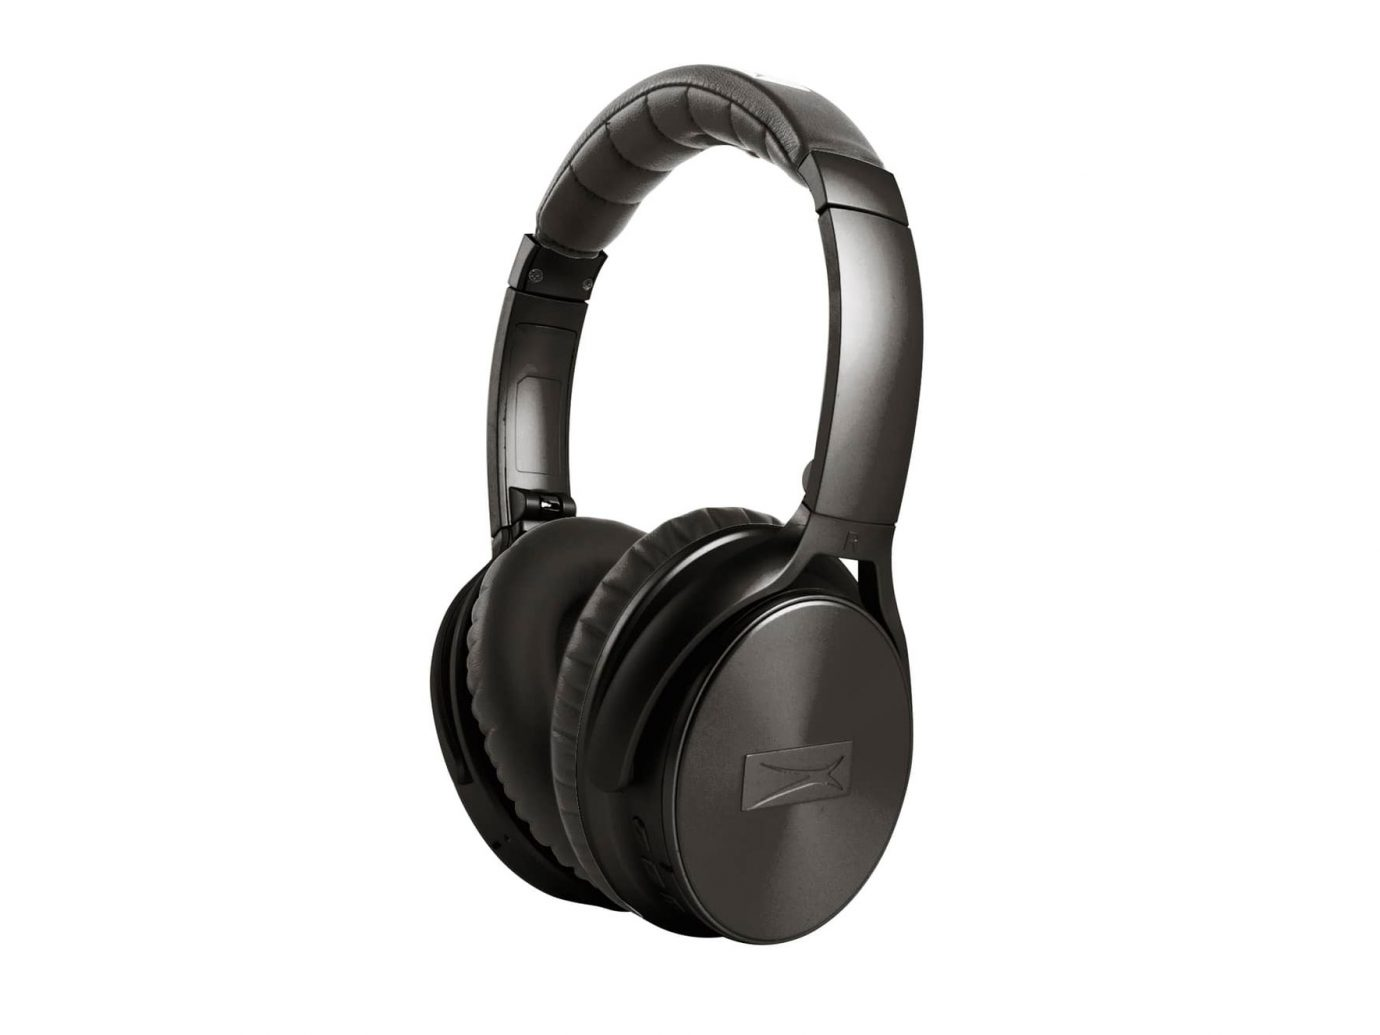 Altec Lansing Active Noise Canceling Wireless Headphones